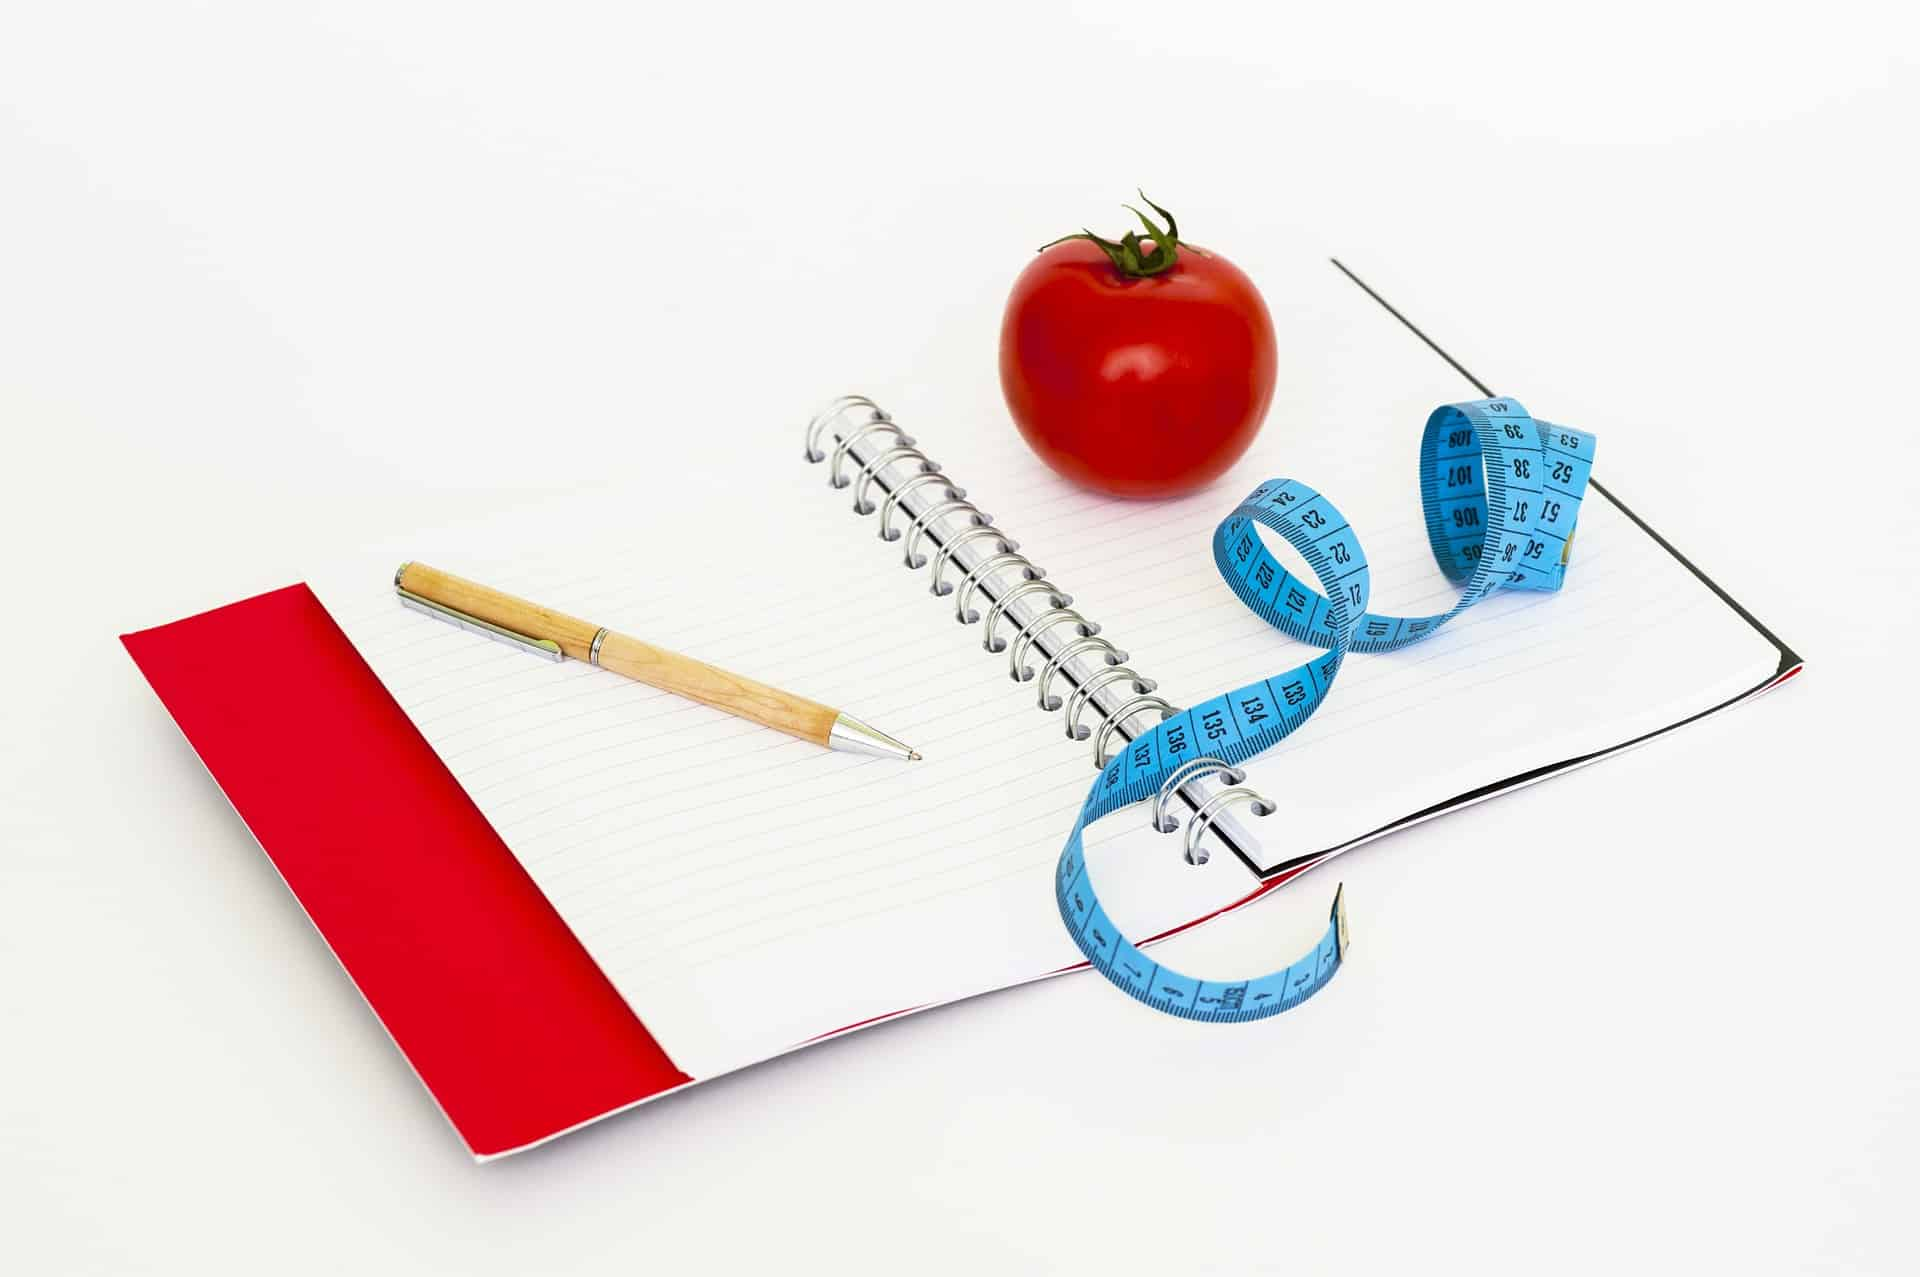 Best Diet Plan For You | The Guy Blog